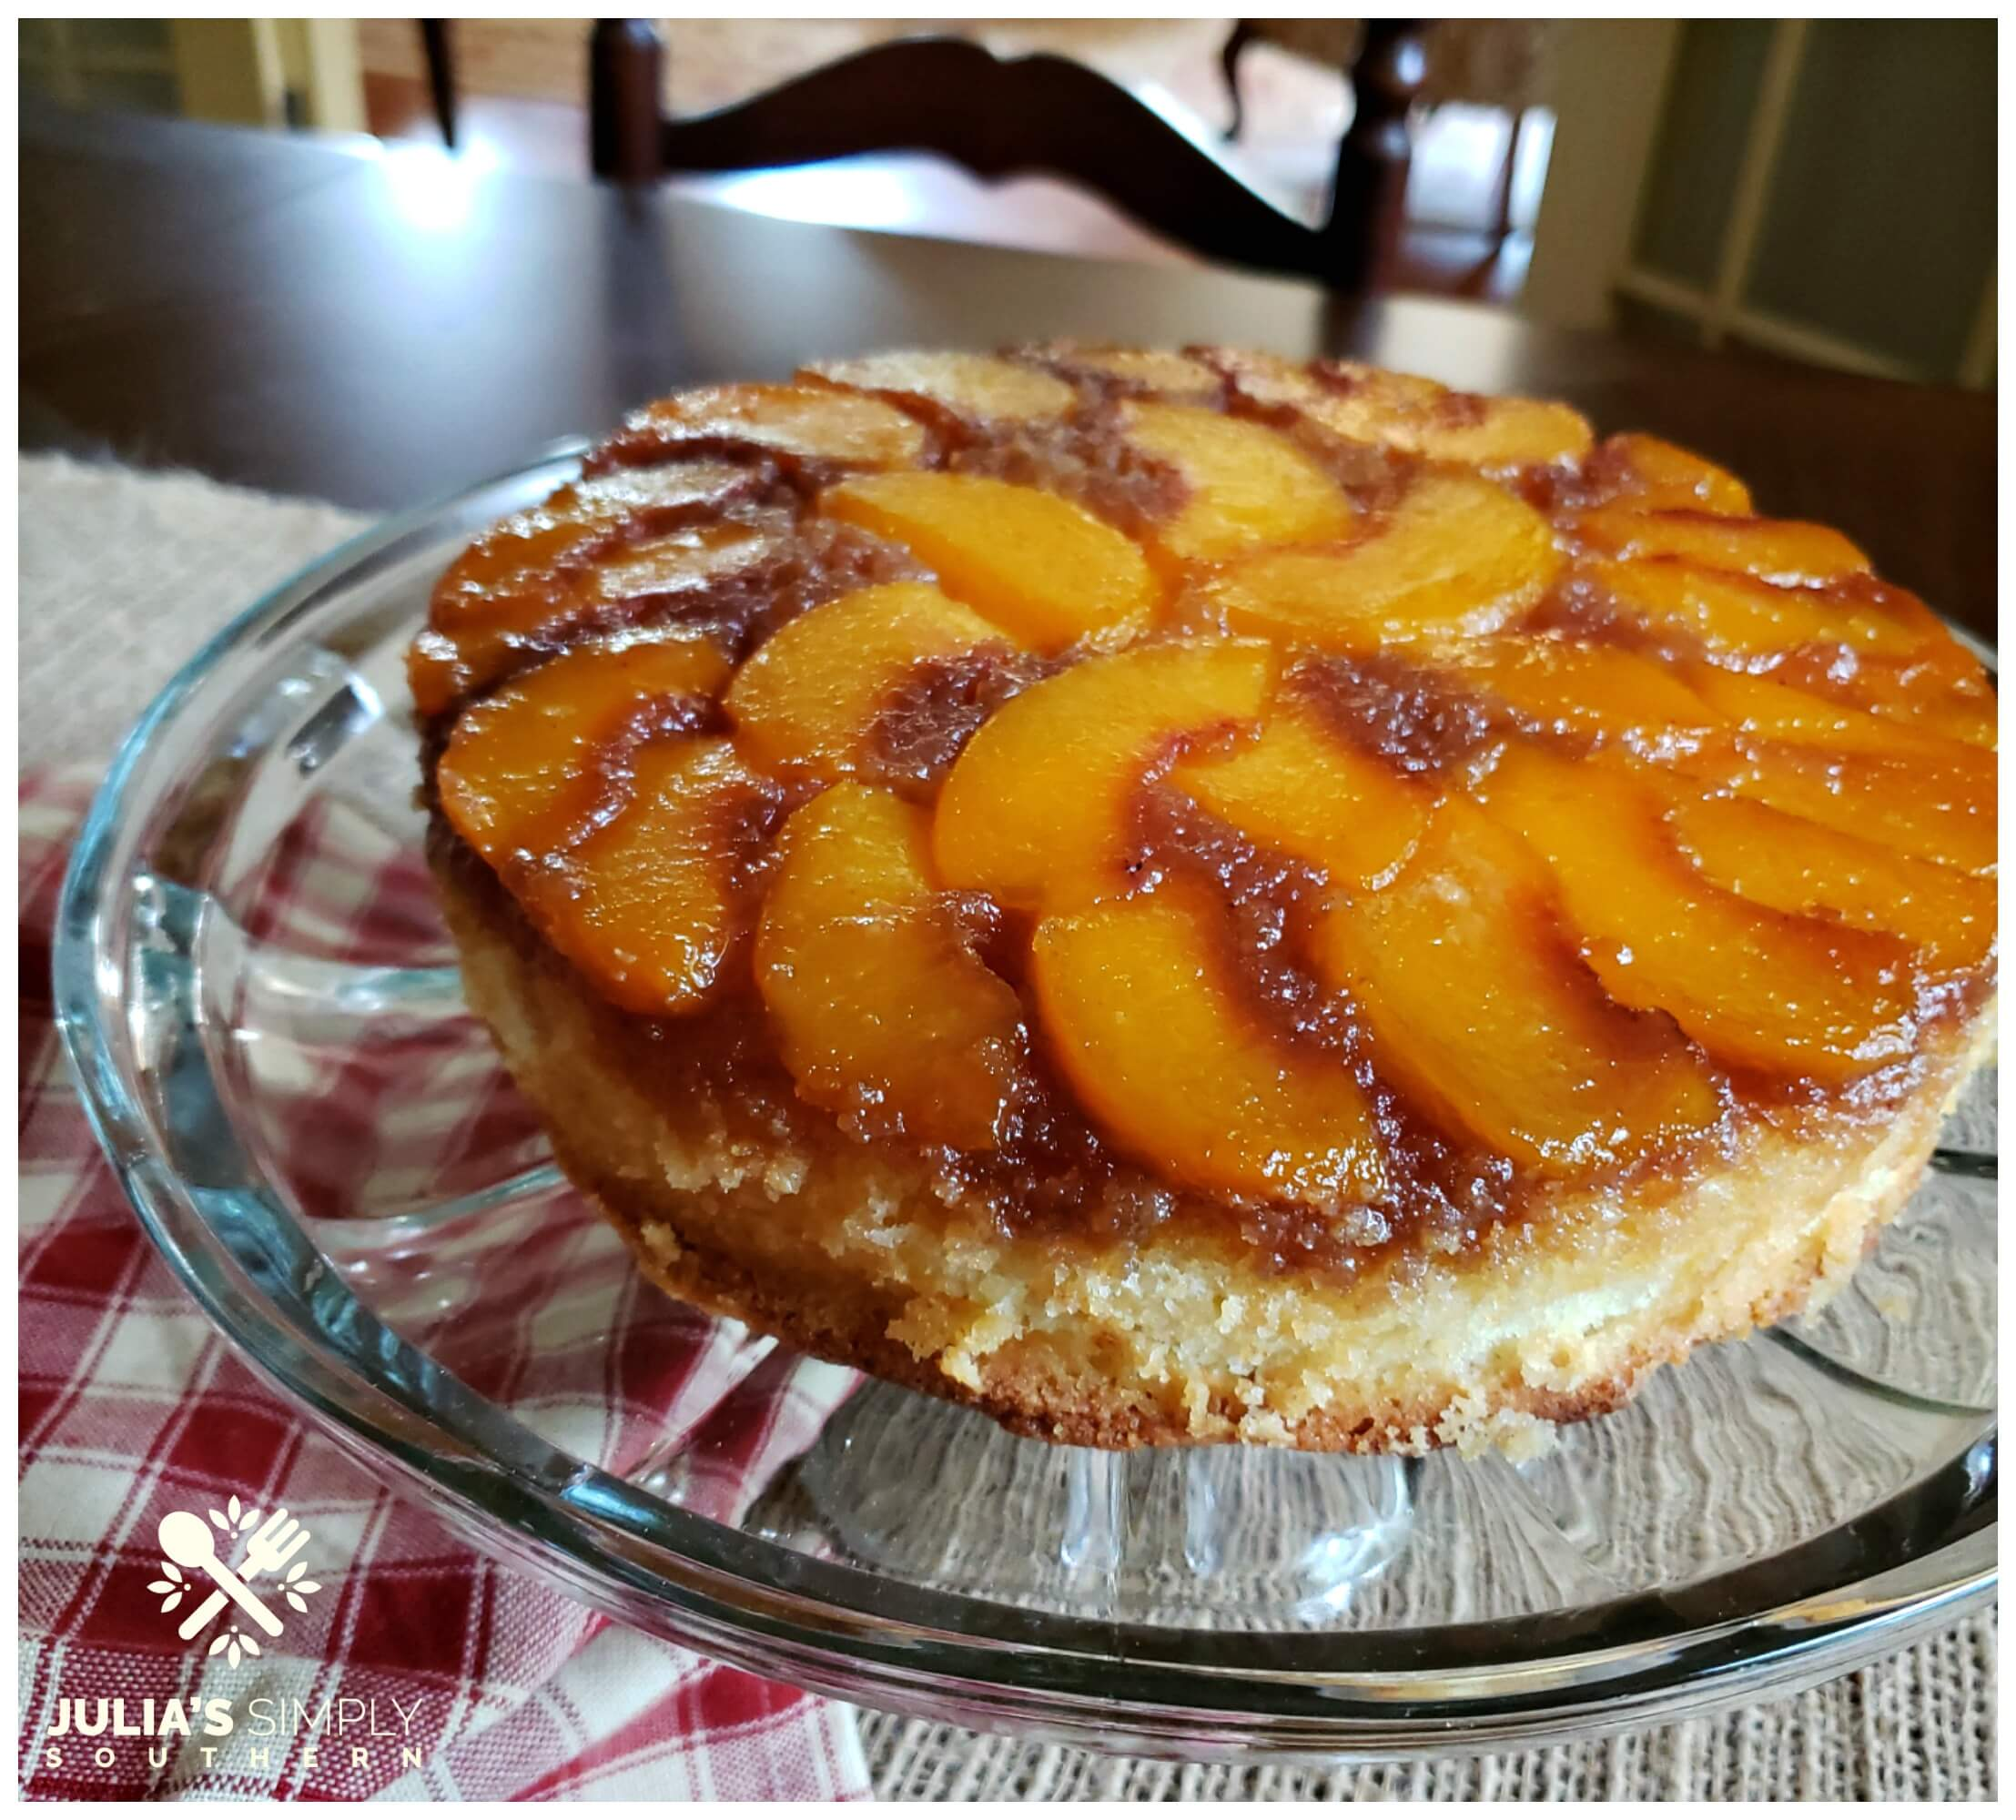 Best peach cake - alton - dessert recipes - Southern upside down peach cake on a glass cake stand in a country style dining room